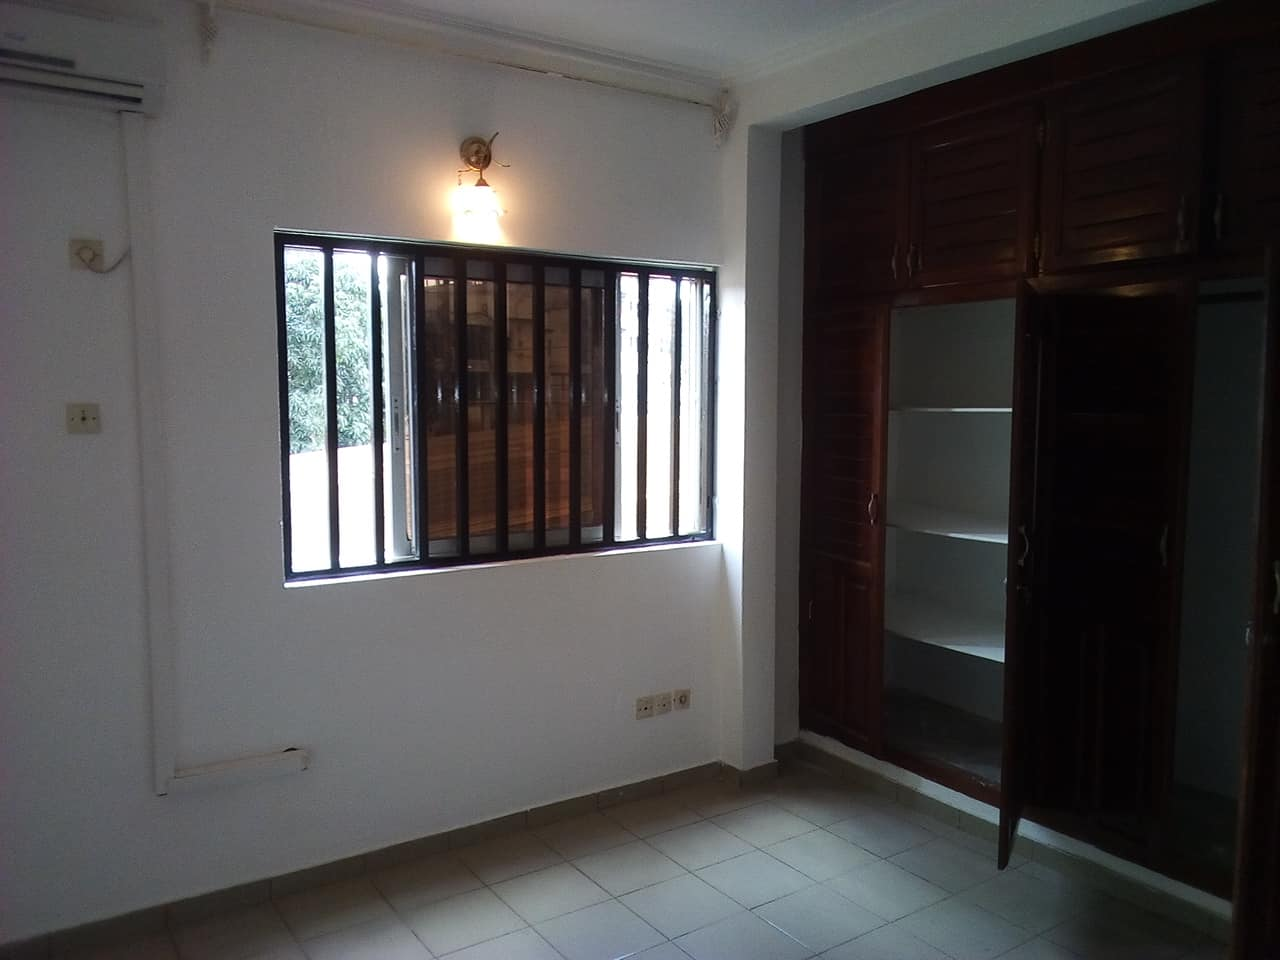 Apartment to rent - Yaoundé, Bastos, pas loin dhortodoxe - 1 living room(s), 3 bedroom(s), 3 bathroom(s) - 600 000 FCFA / month